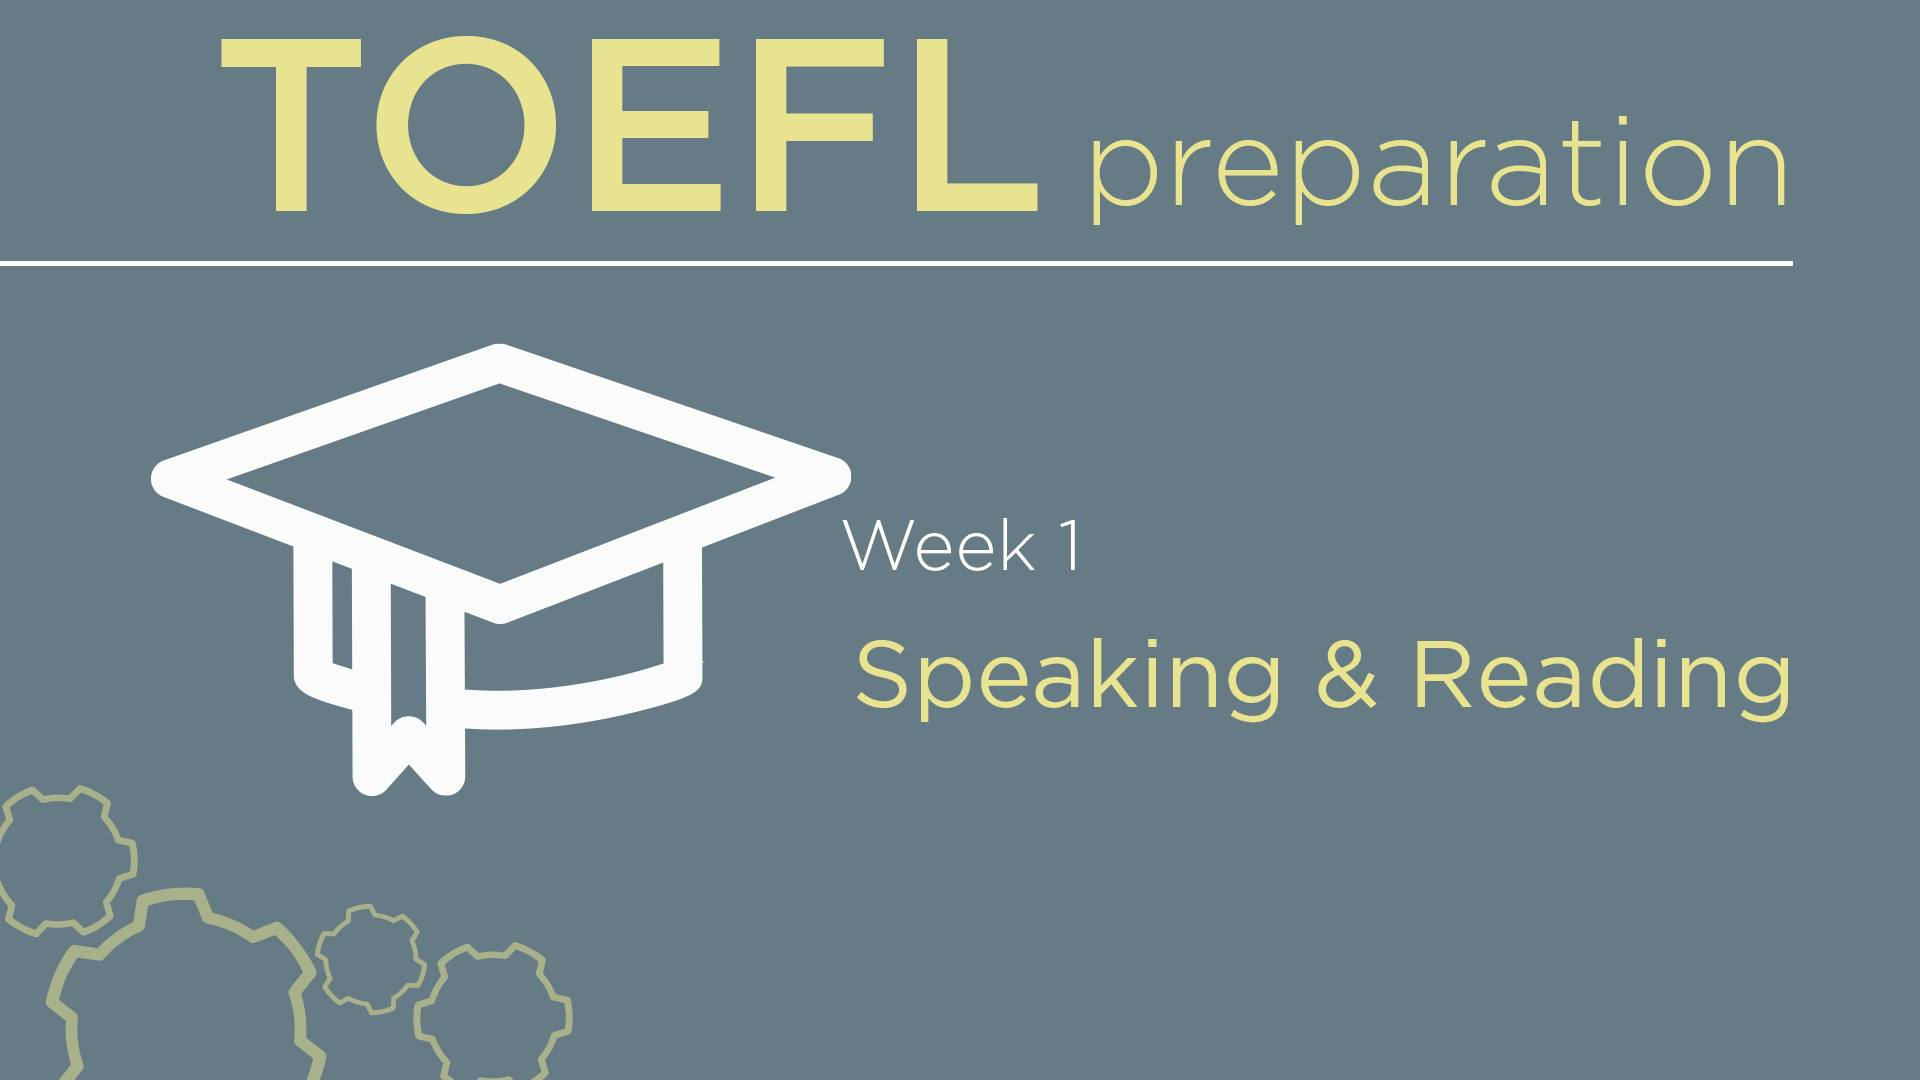 TOEFL preparation with Nick. October 10